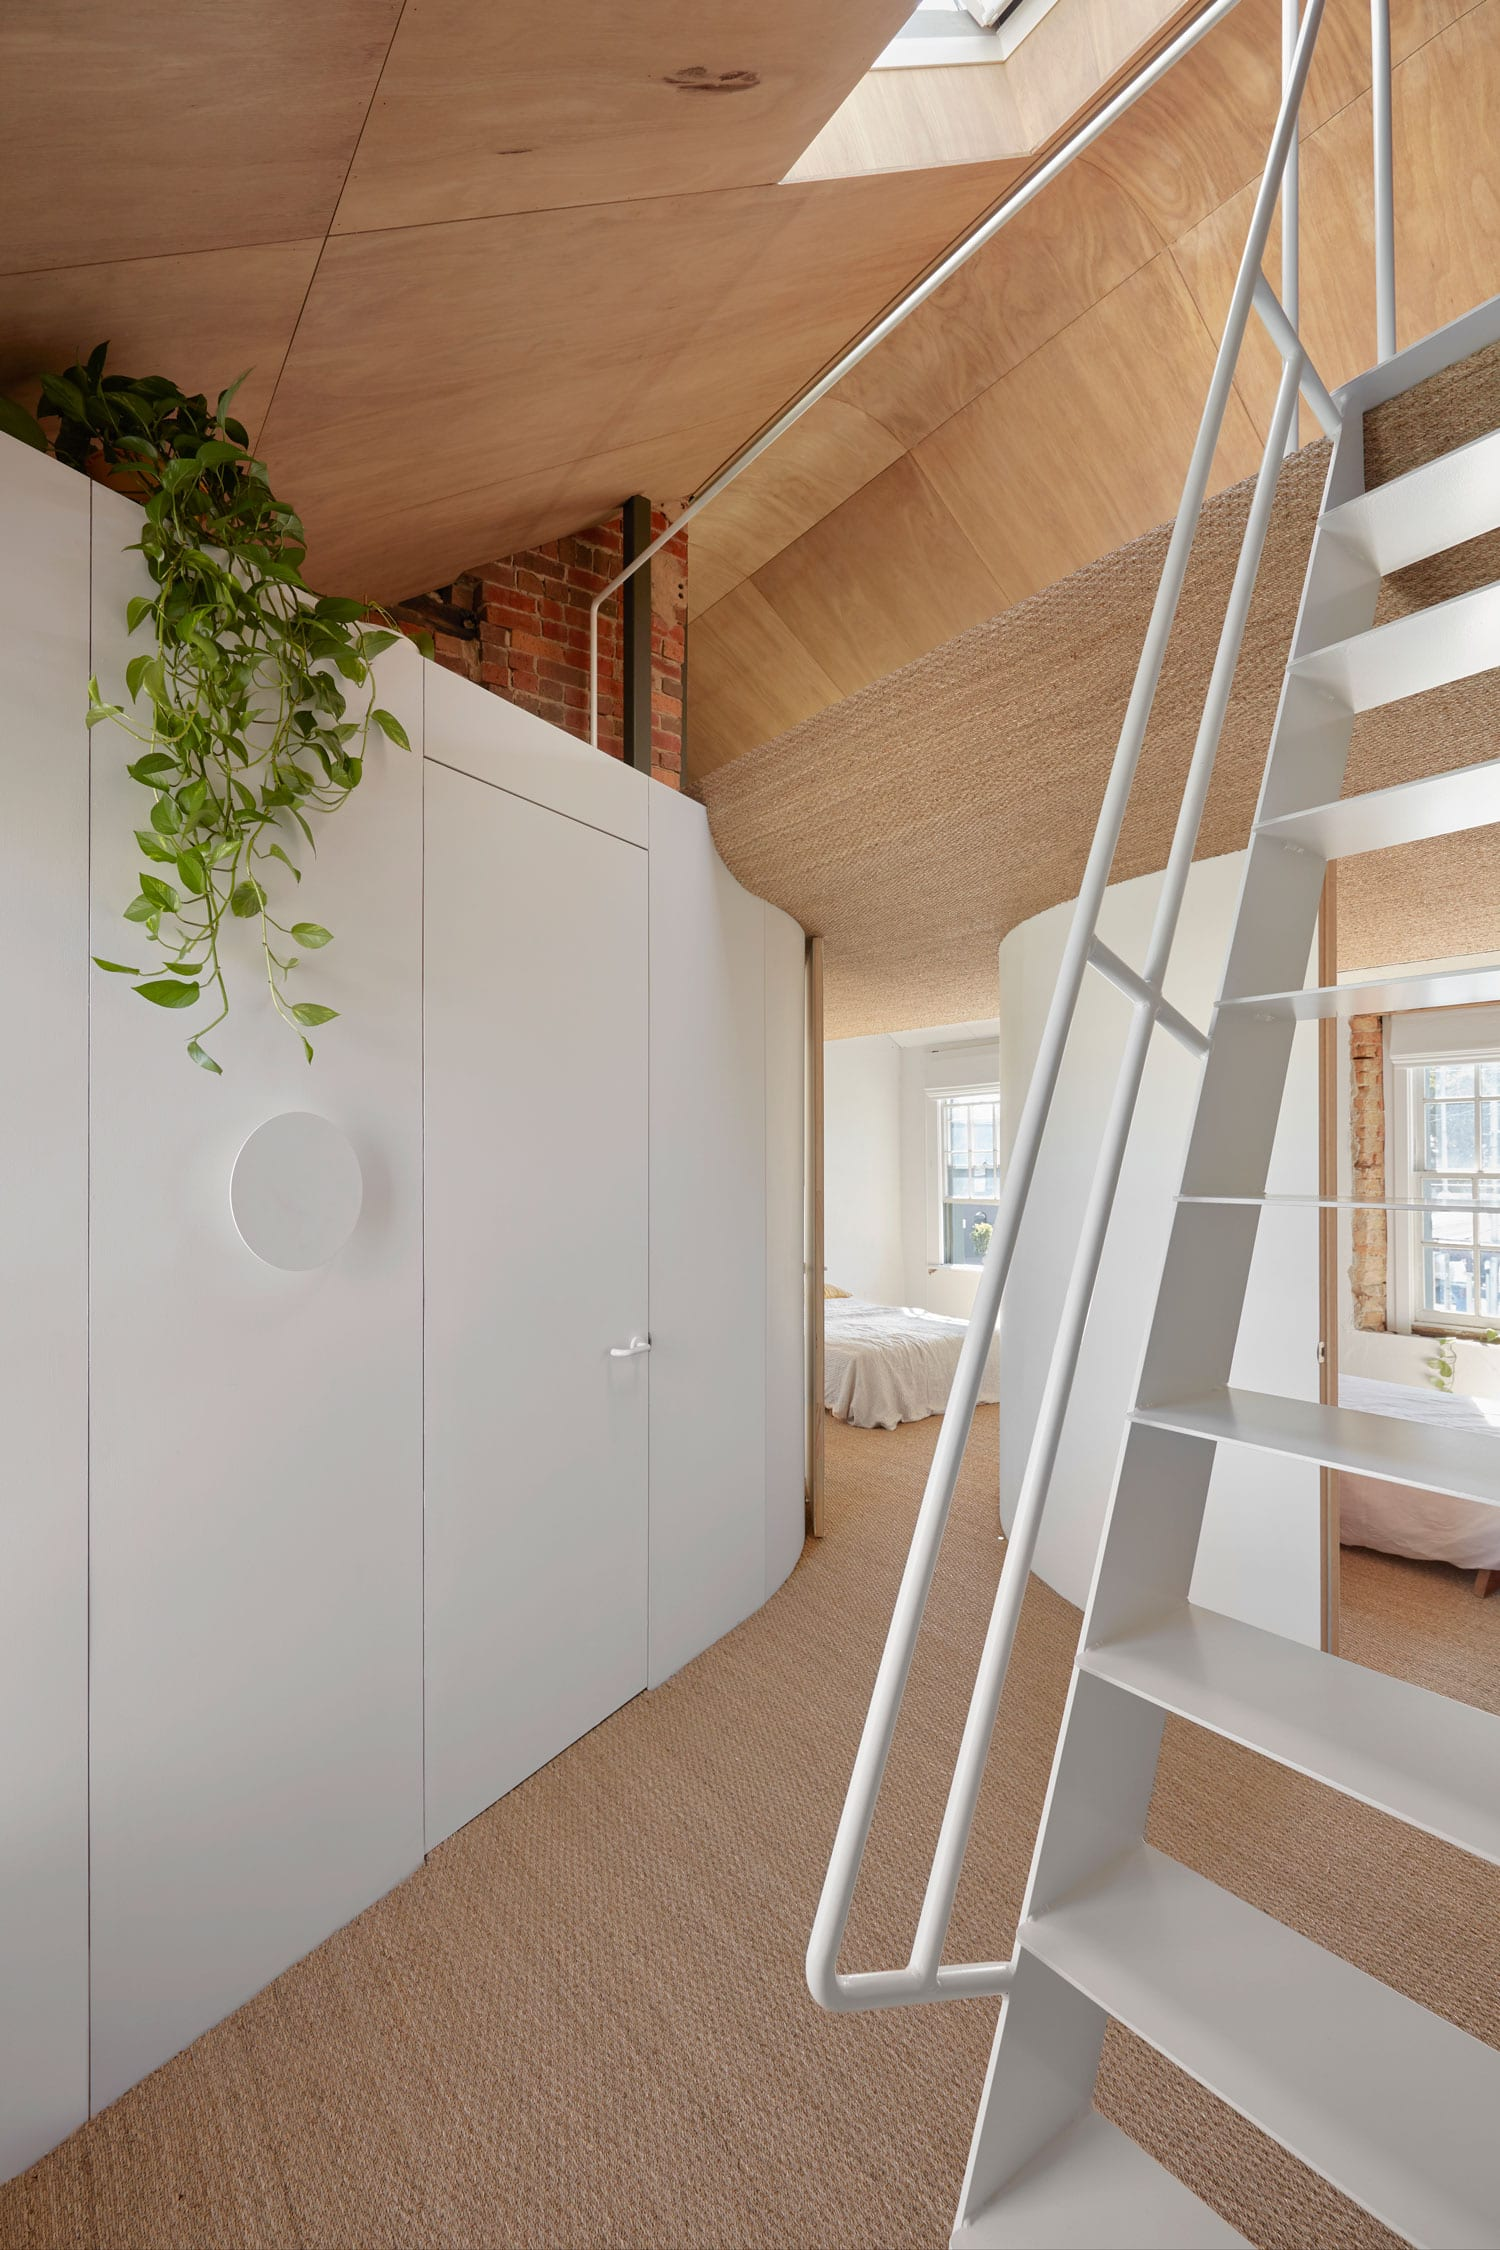 Hoa's House: Conversion of a 150-year-old Melbourne Pub by ioa-studio   Yellowtracer